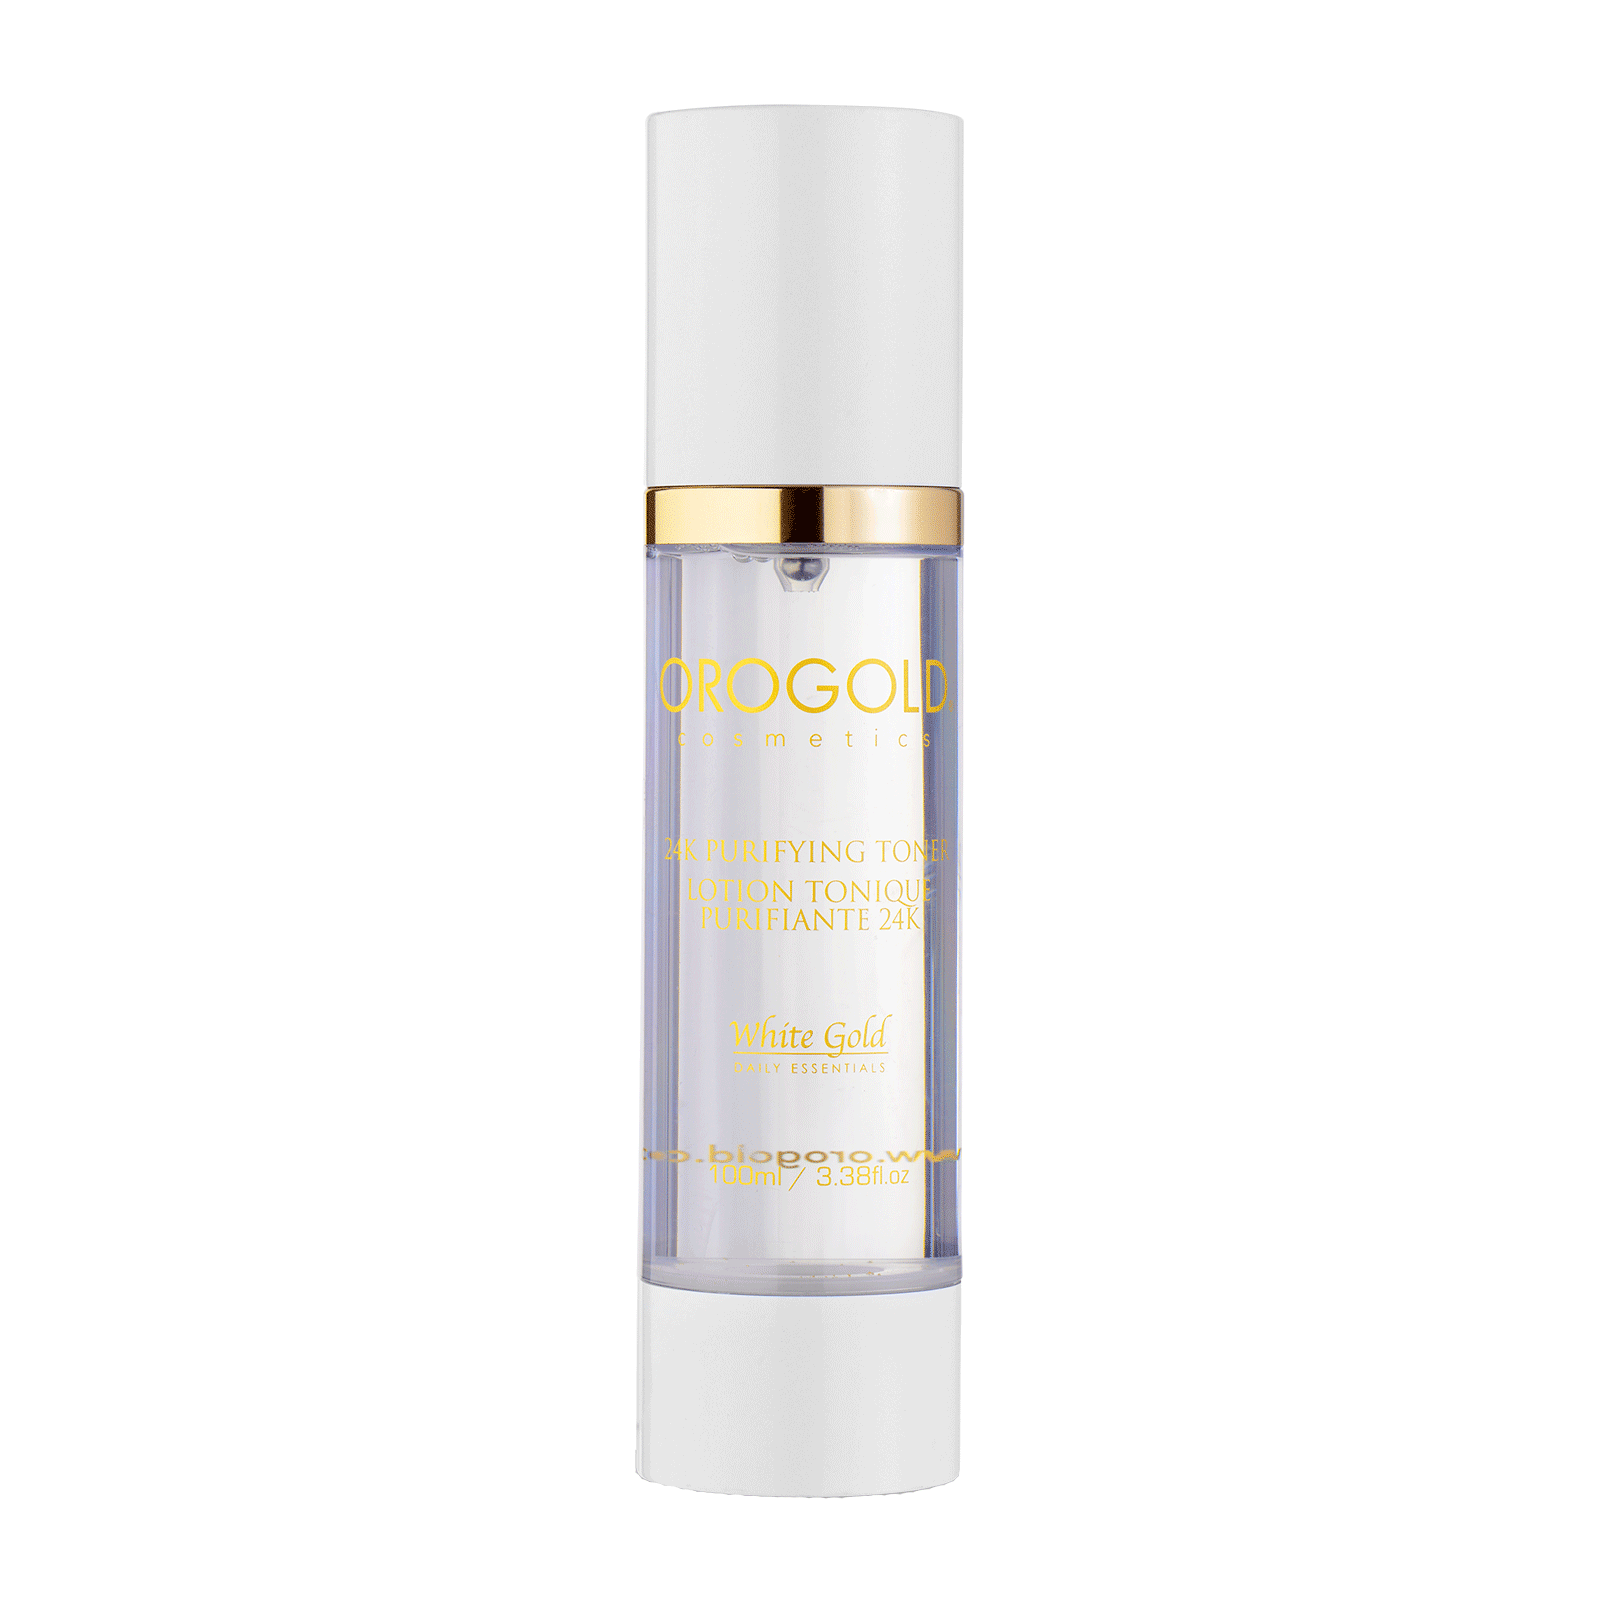 White Gold 24K Purifying Toner